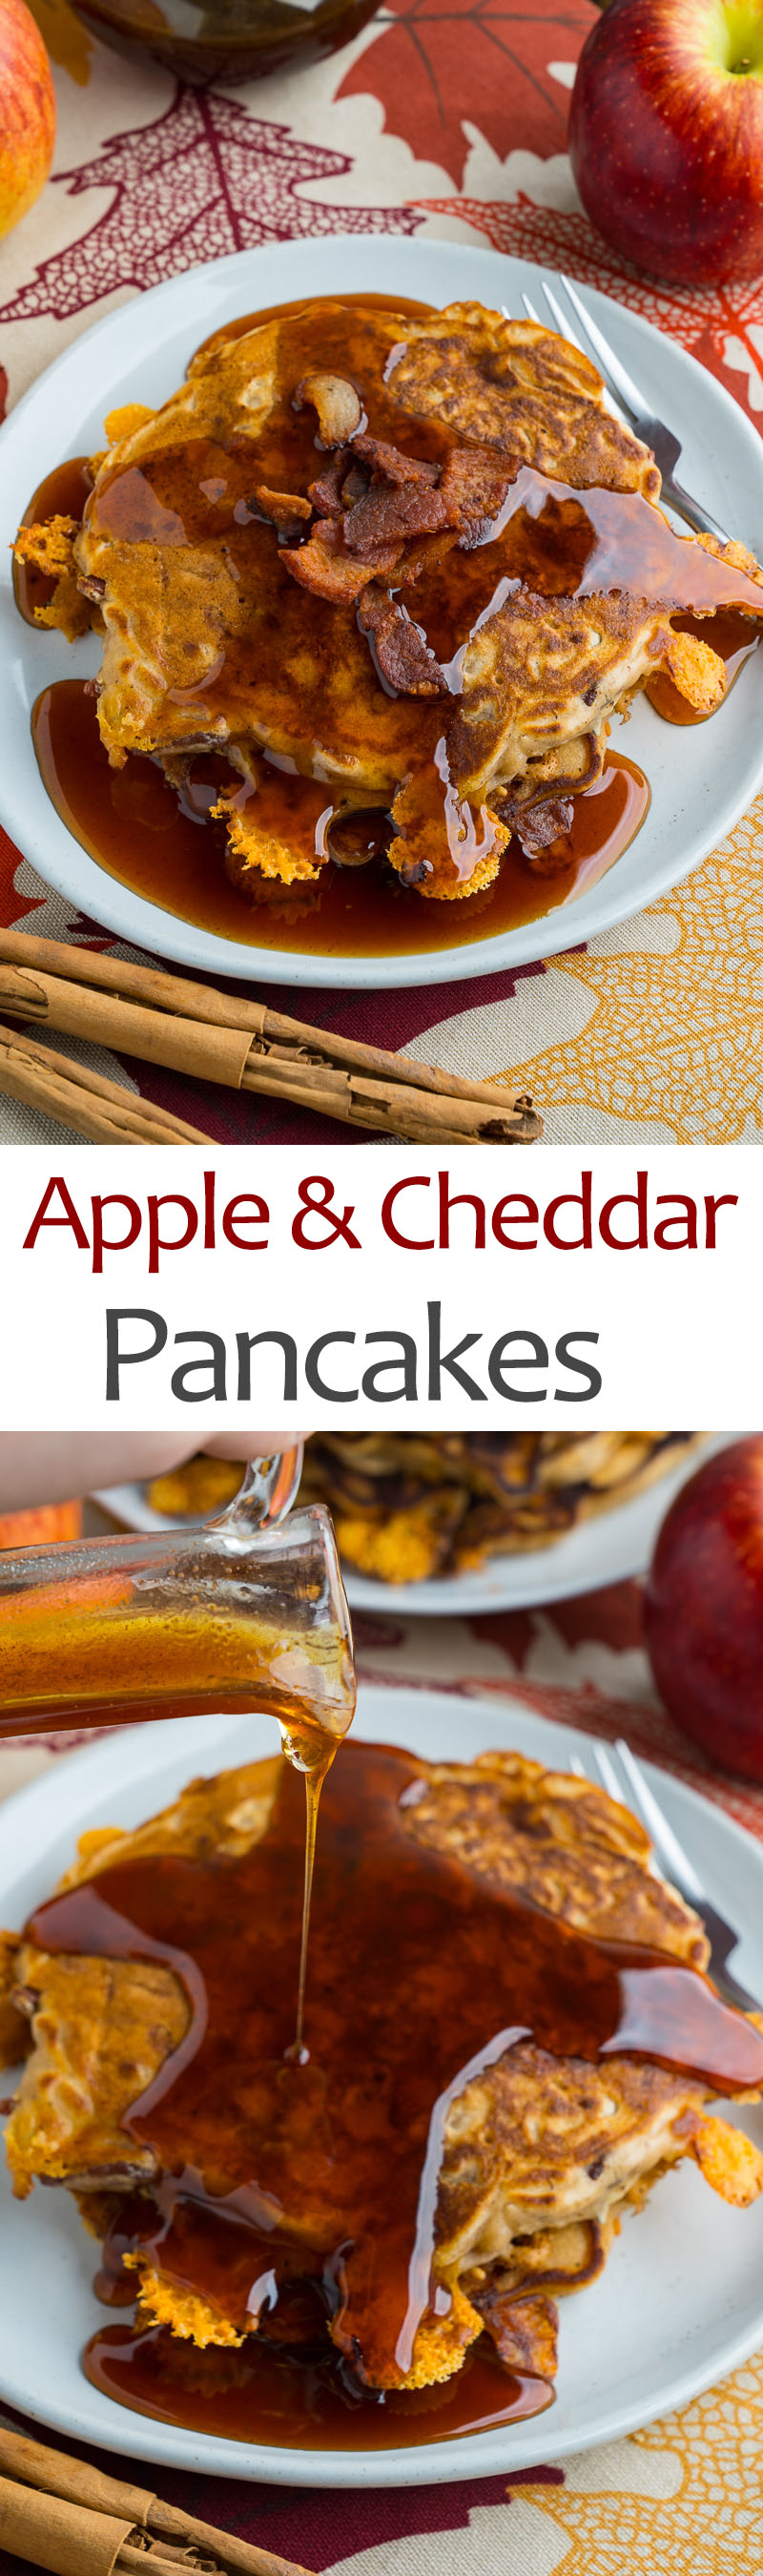 Apple and Cheddar Pancakes